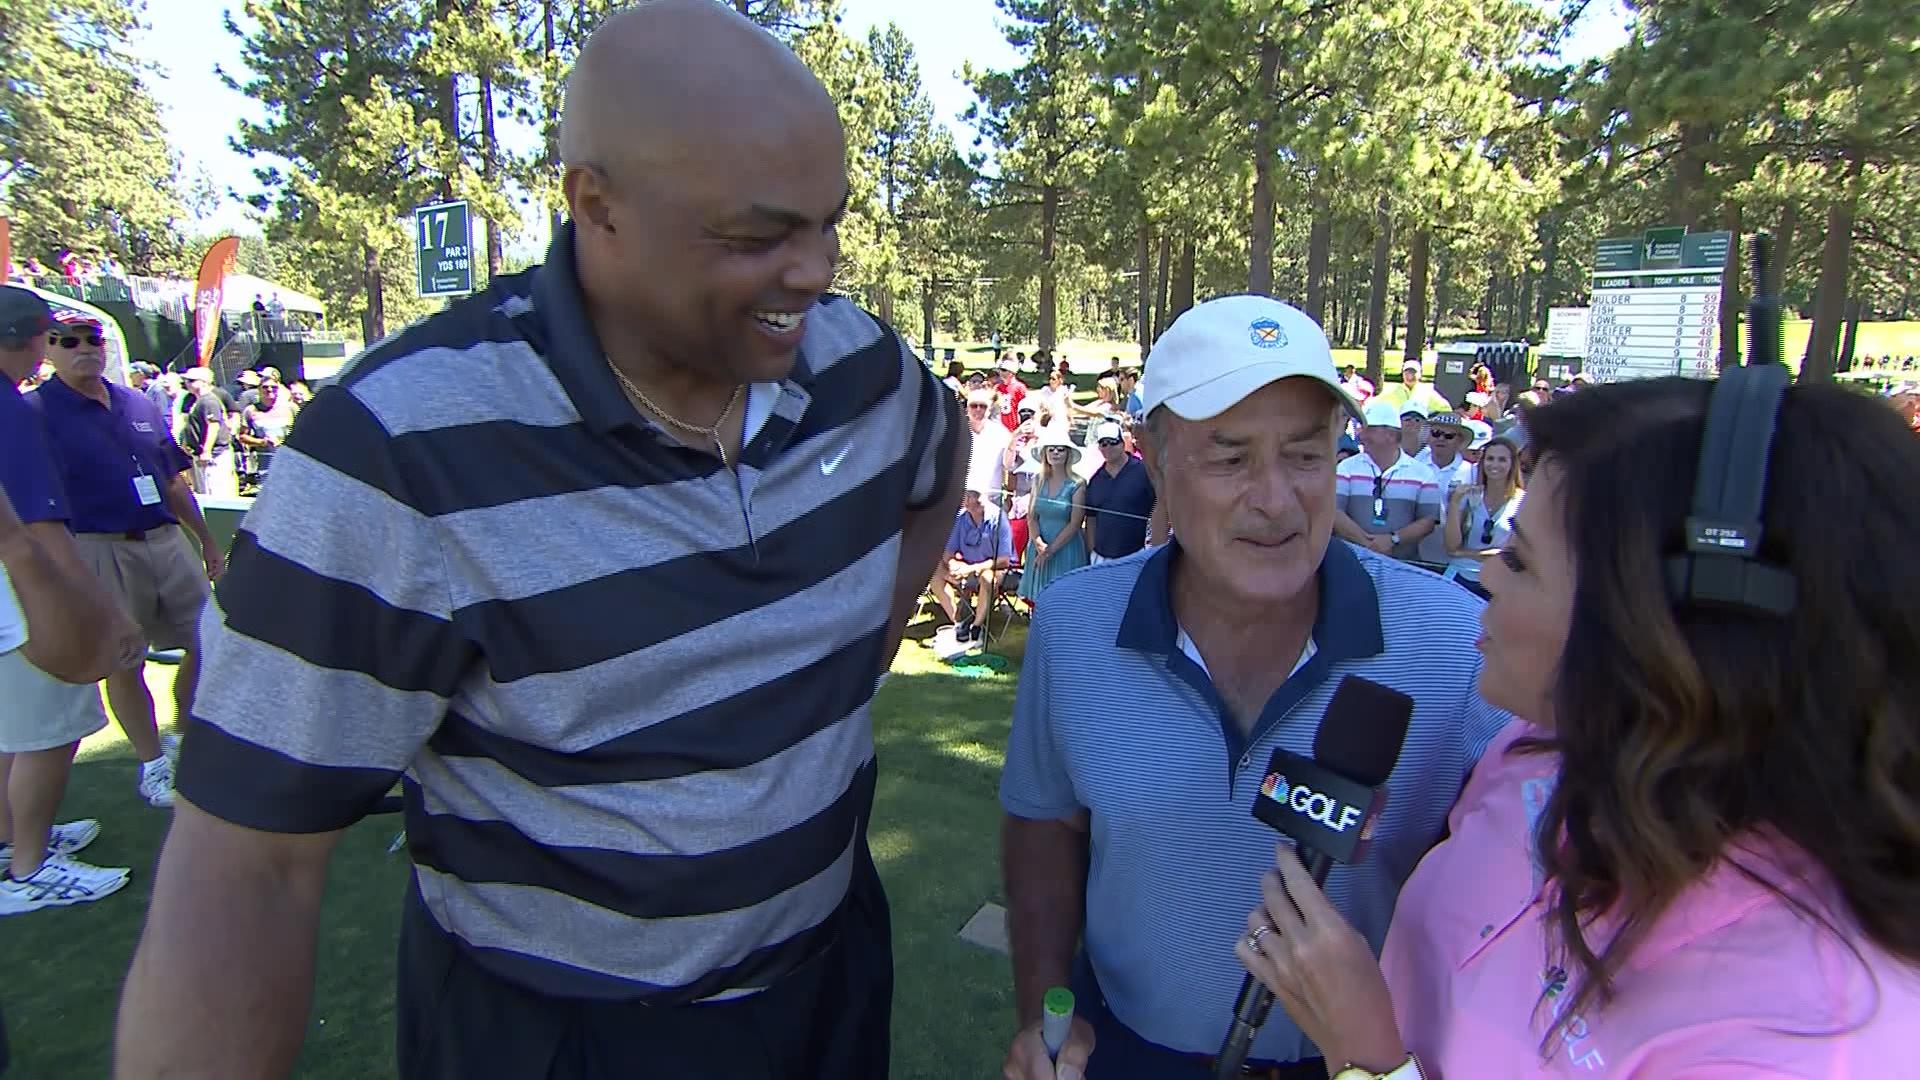 http://golfchannel.akamaized.net/ramp/423/107/071617_acc_barkley_al_michaels_thumb.jpg